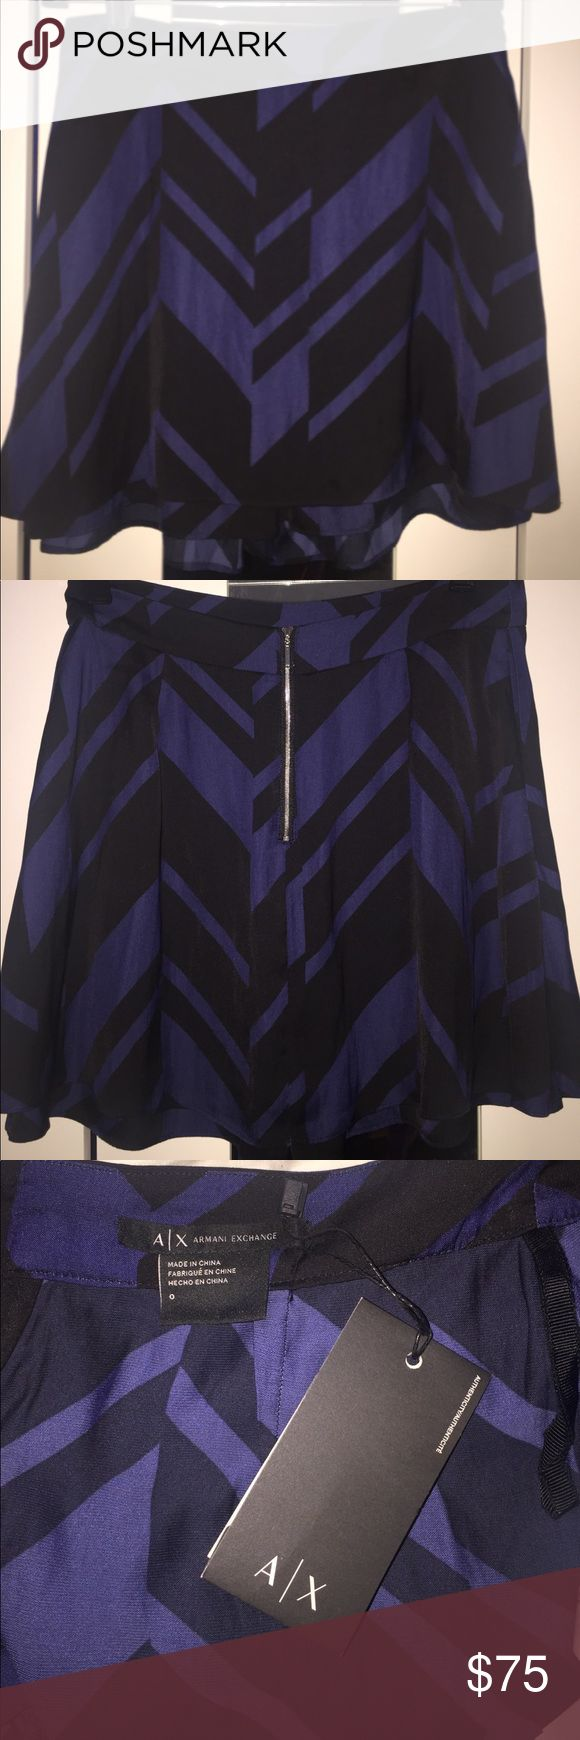 NWT- Armani Exchange Silk Blue/Black Skort!! Brand new, never worn! Super cute Armani Exchange blue/black silk skort (skirt with shorts under)! Original tags attached, with certificate of authenticity (pictured). Fun and flirty skirt perfect for summer!! A/X Armani Exchange Skirts